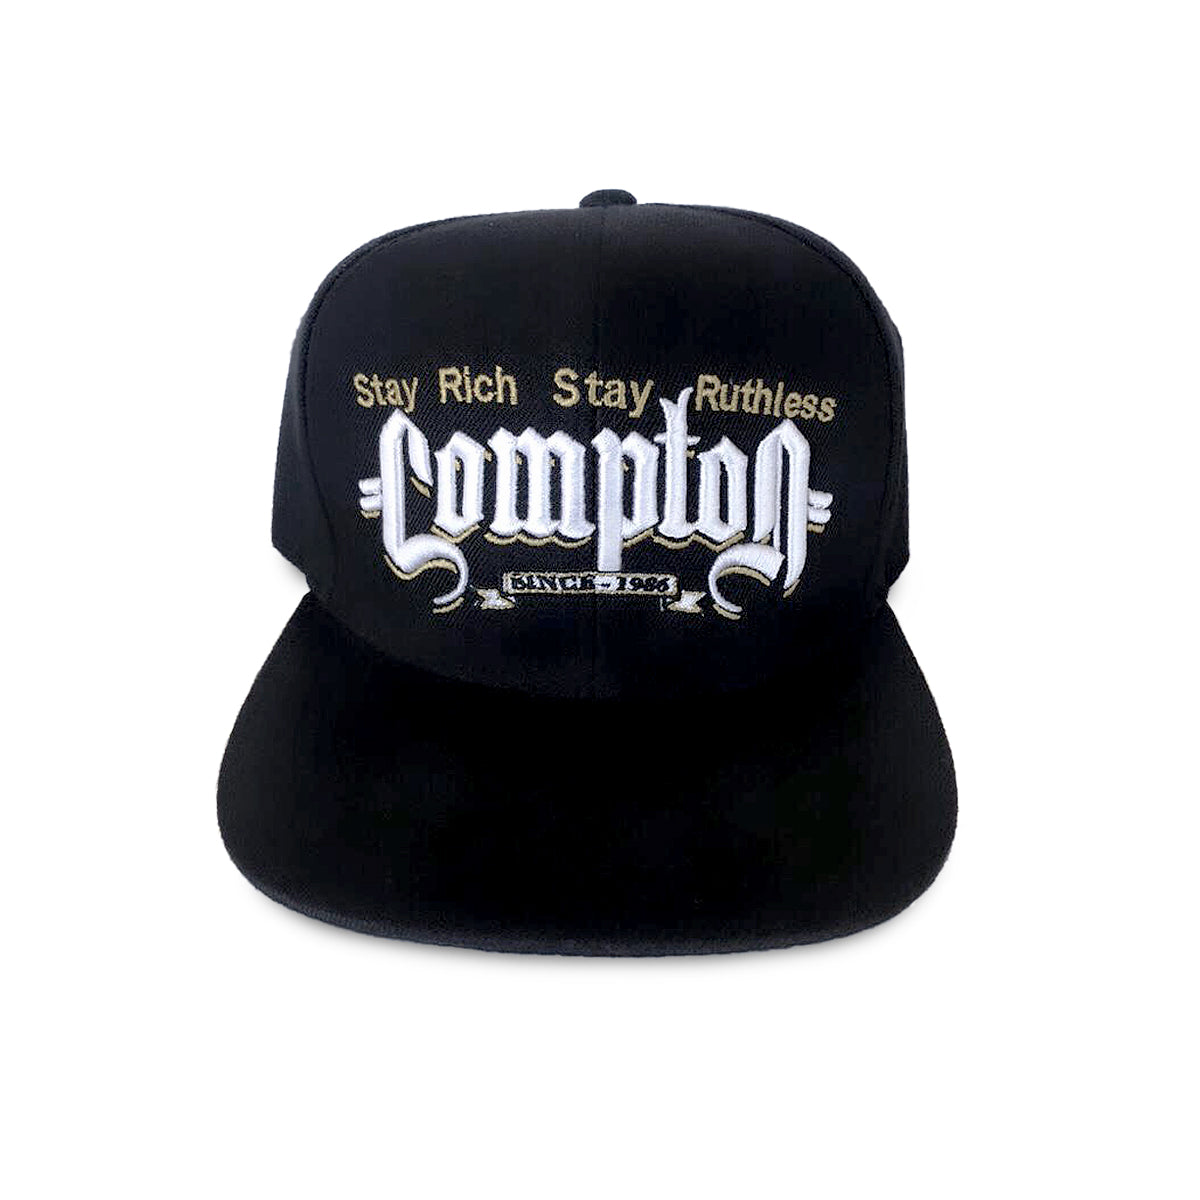 Stay Rich Stay Ruthless Compton Hat (Black)